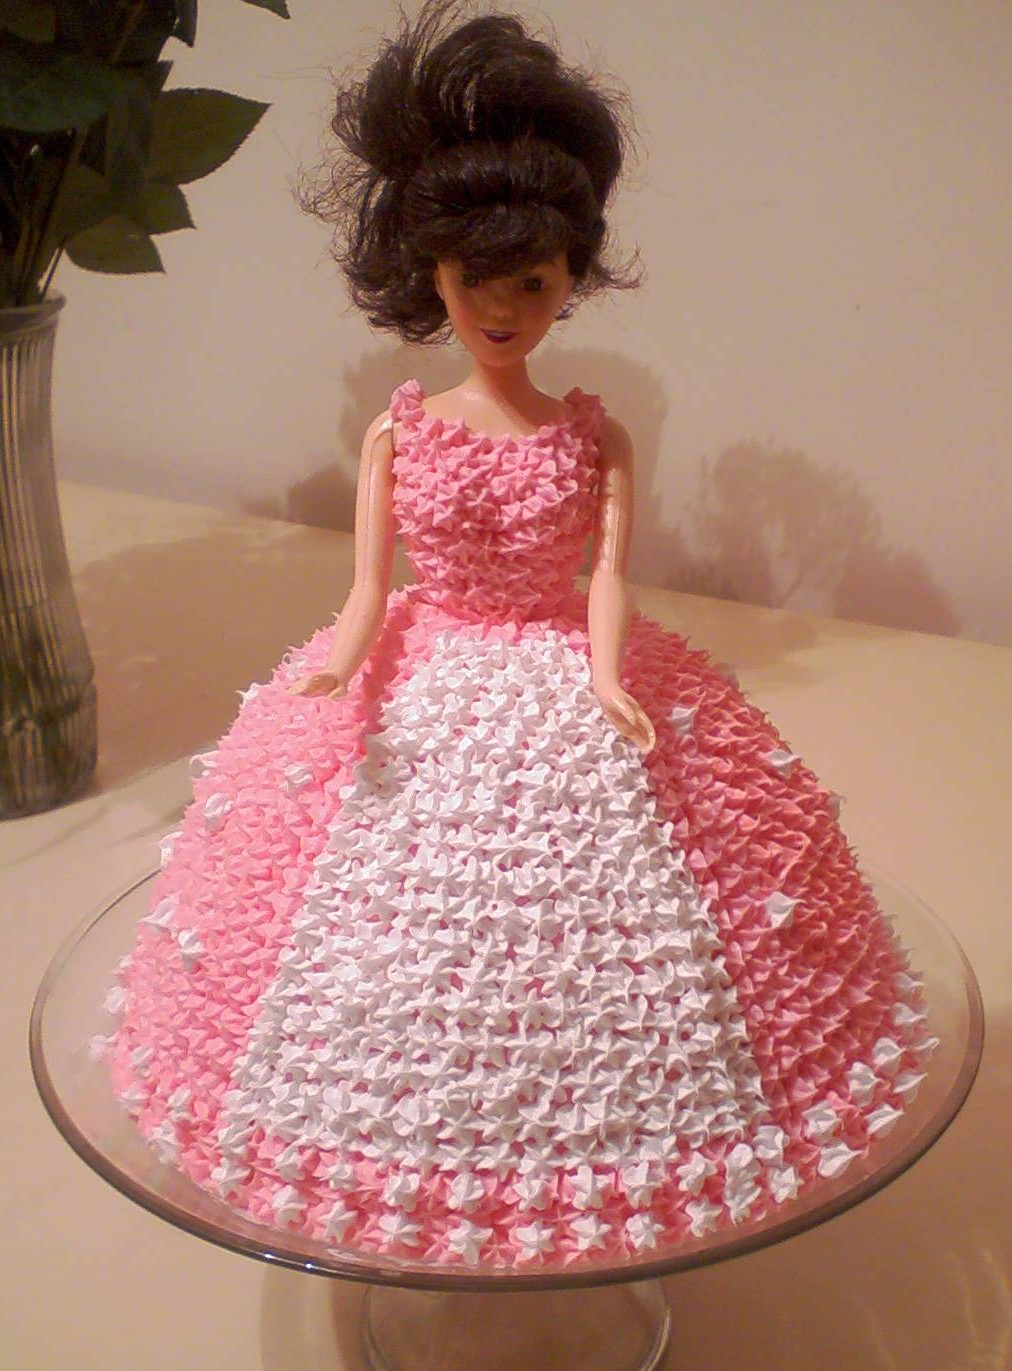 IZAS CAKES Barbie doll cakes